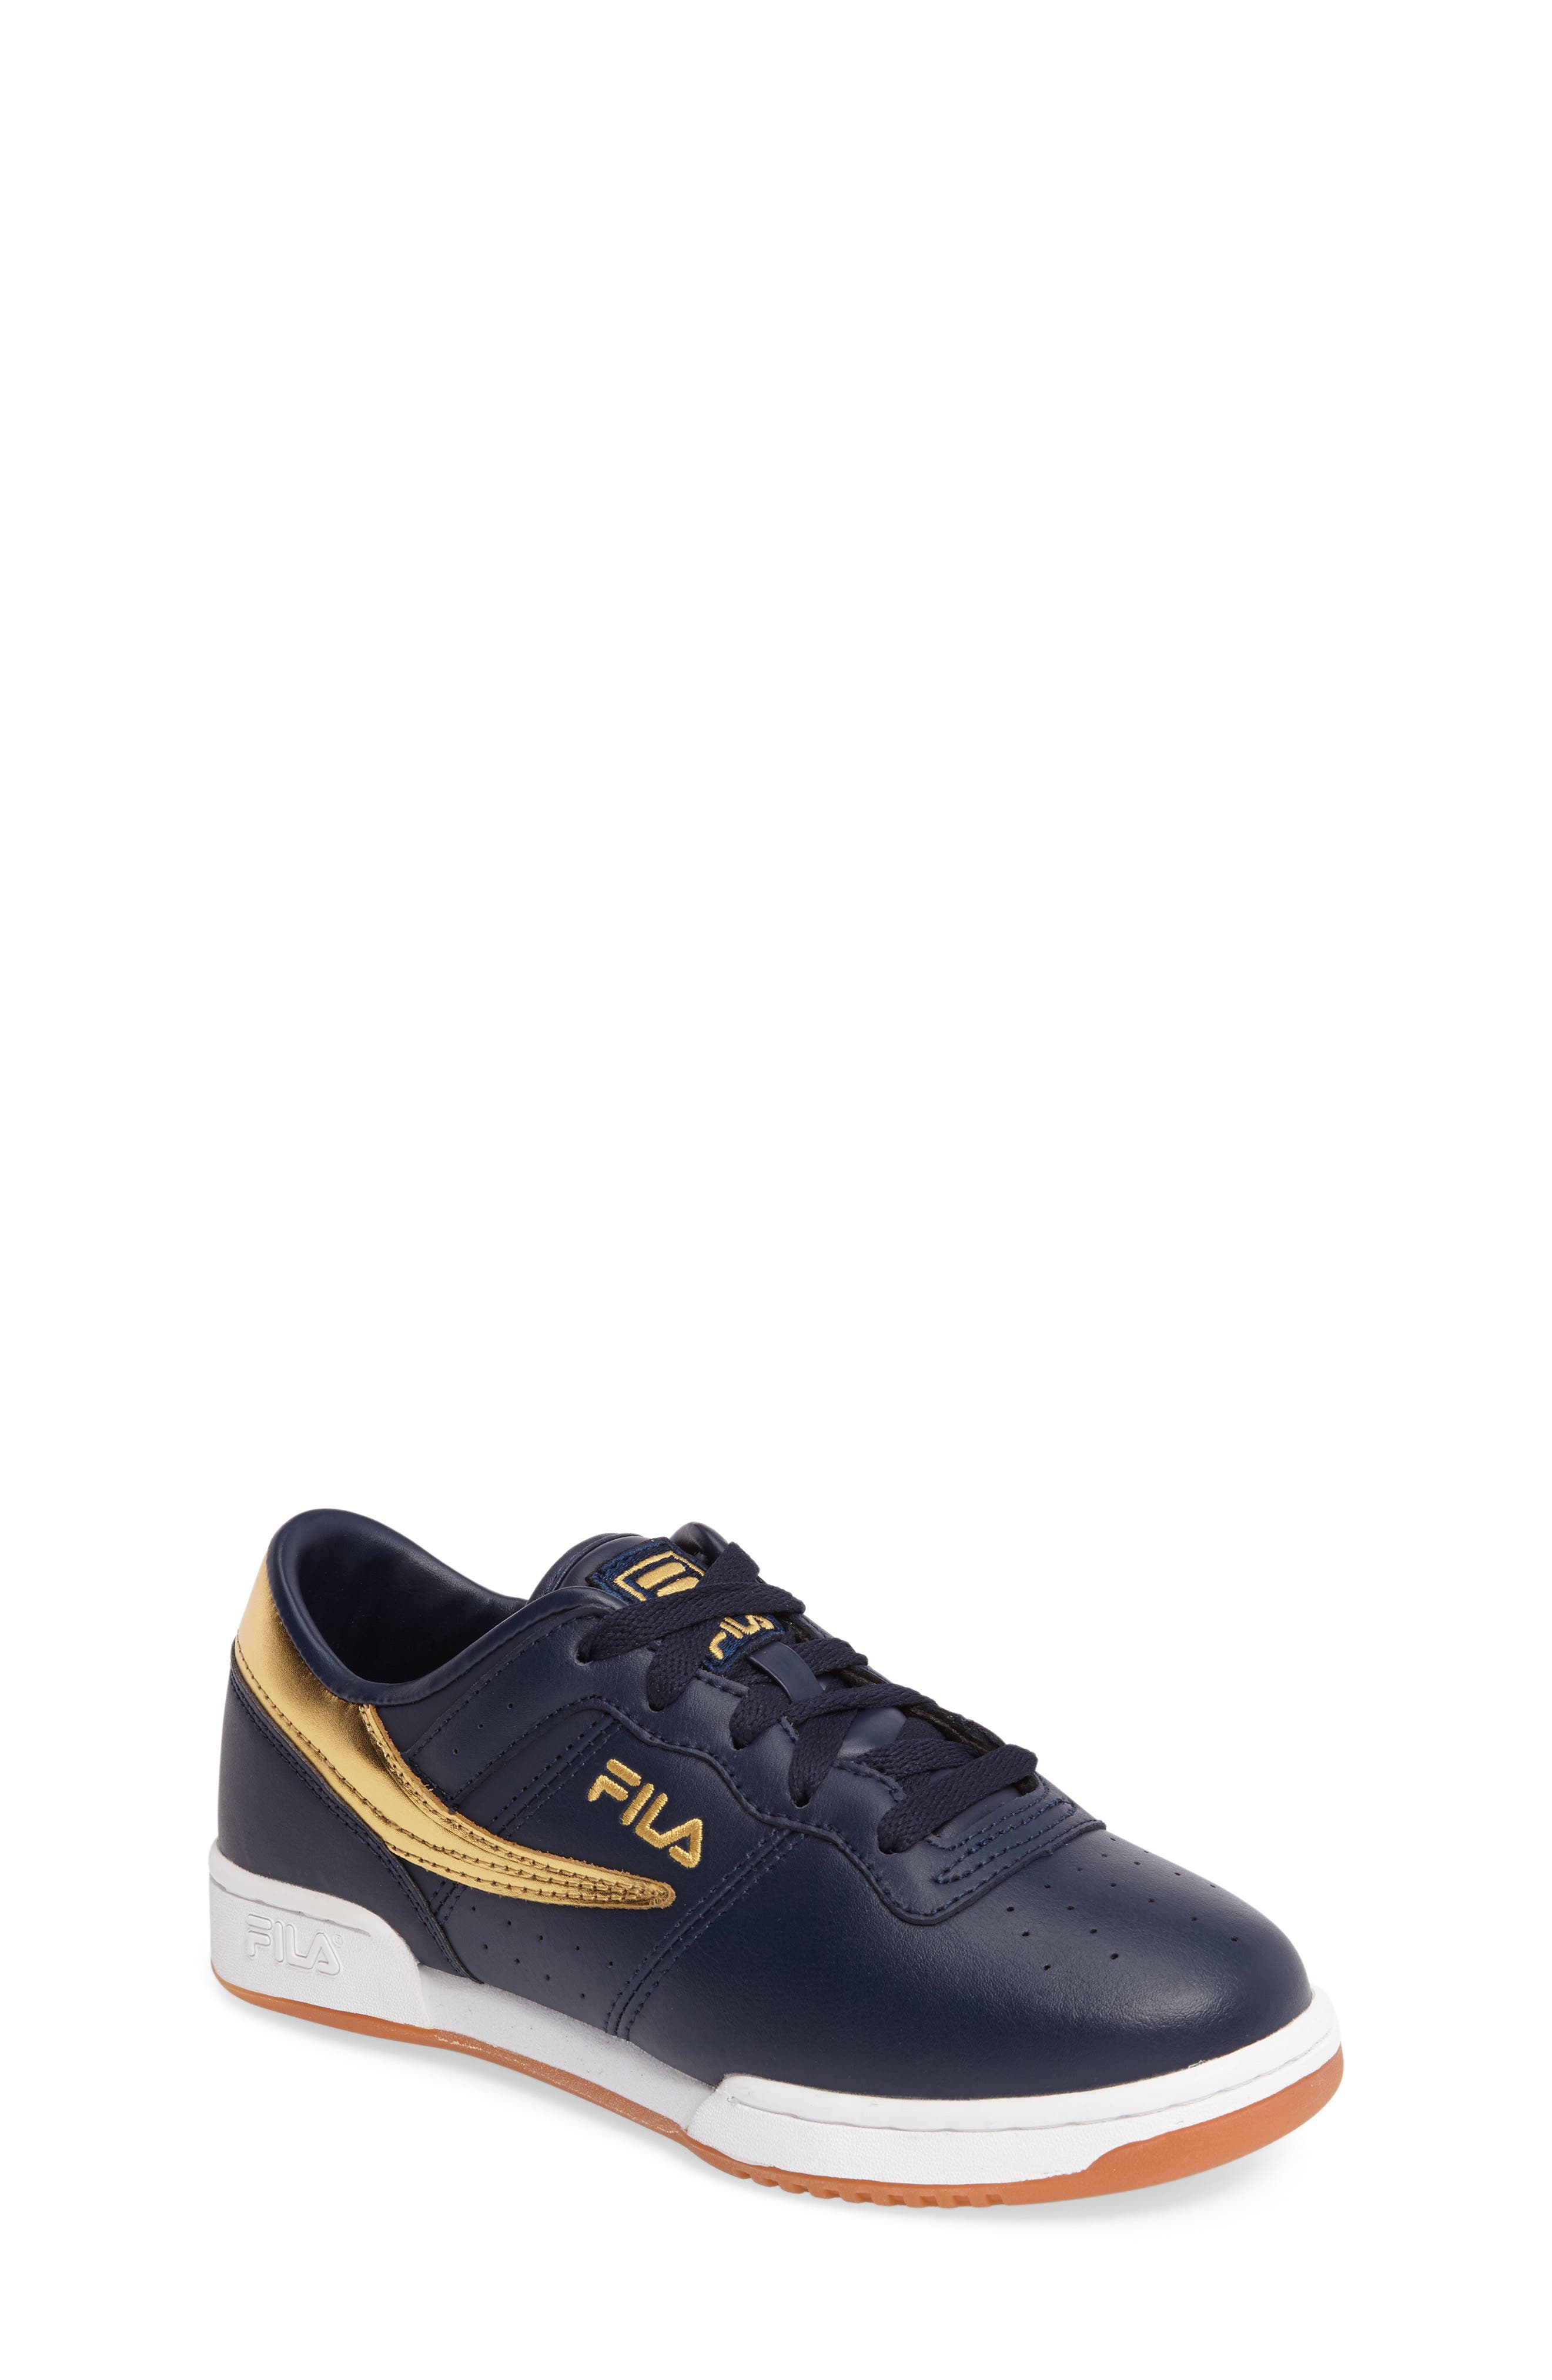 Heritage Sneaker,                         Main,                         color, Navy/ Gold Faux Leather